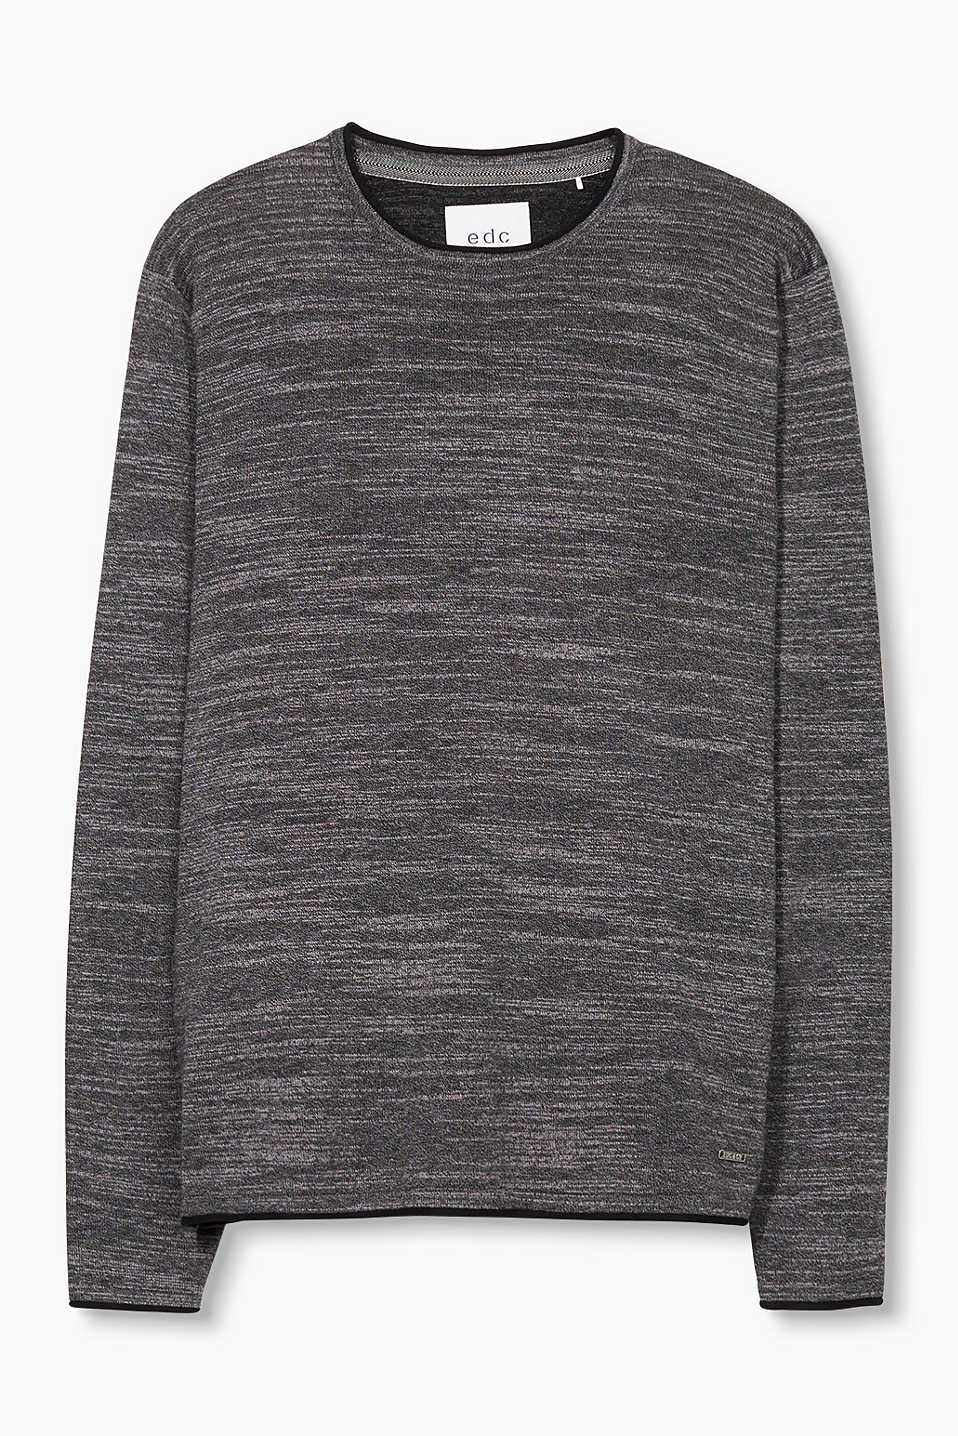 Esprit Grey - 001 Slub Sweater